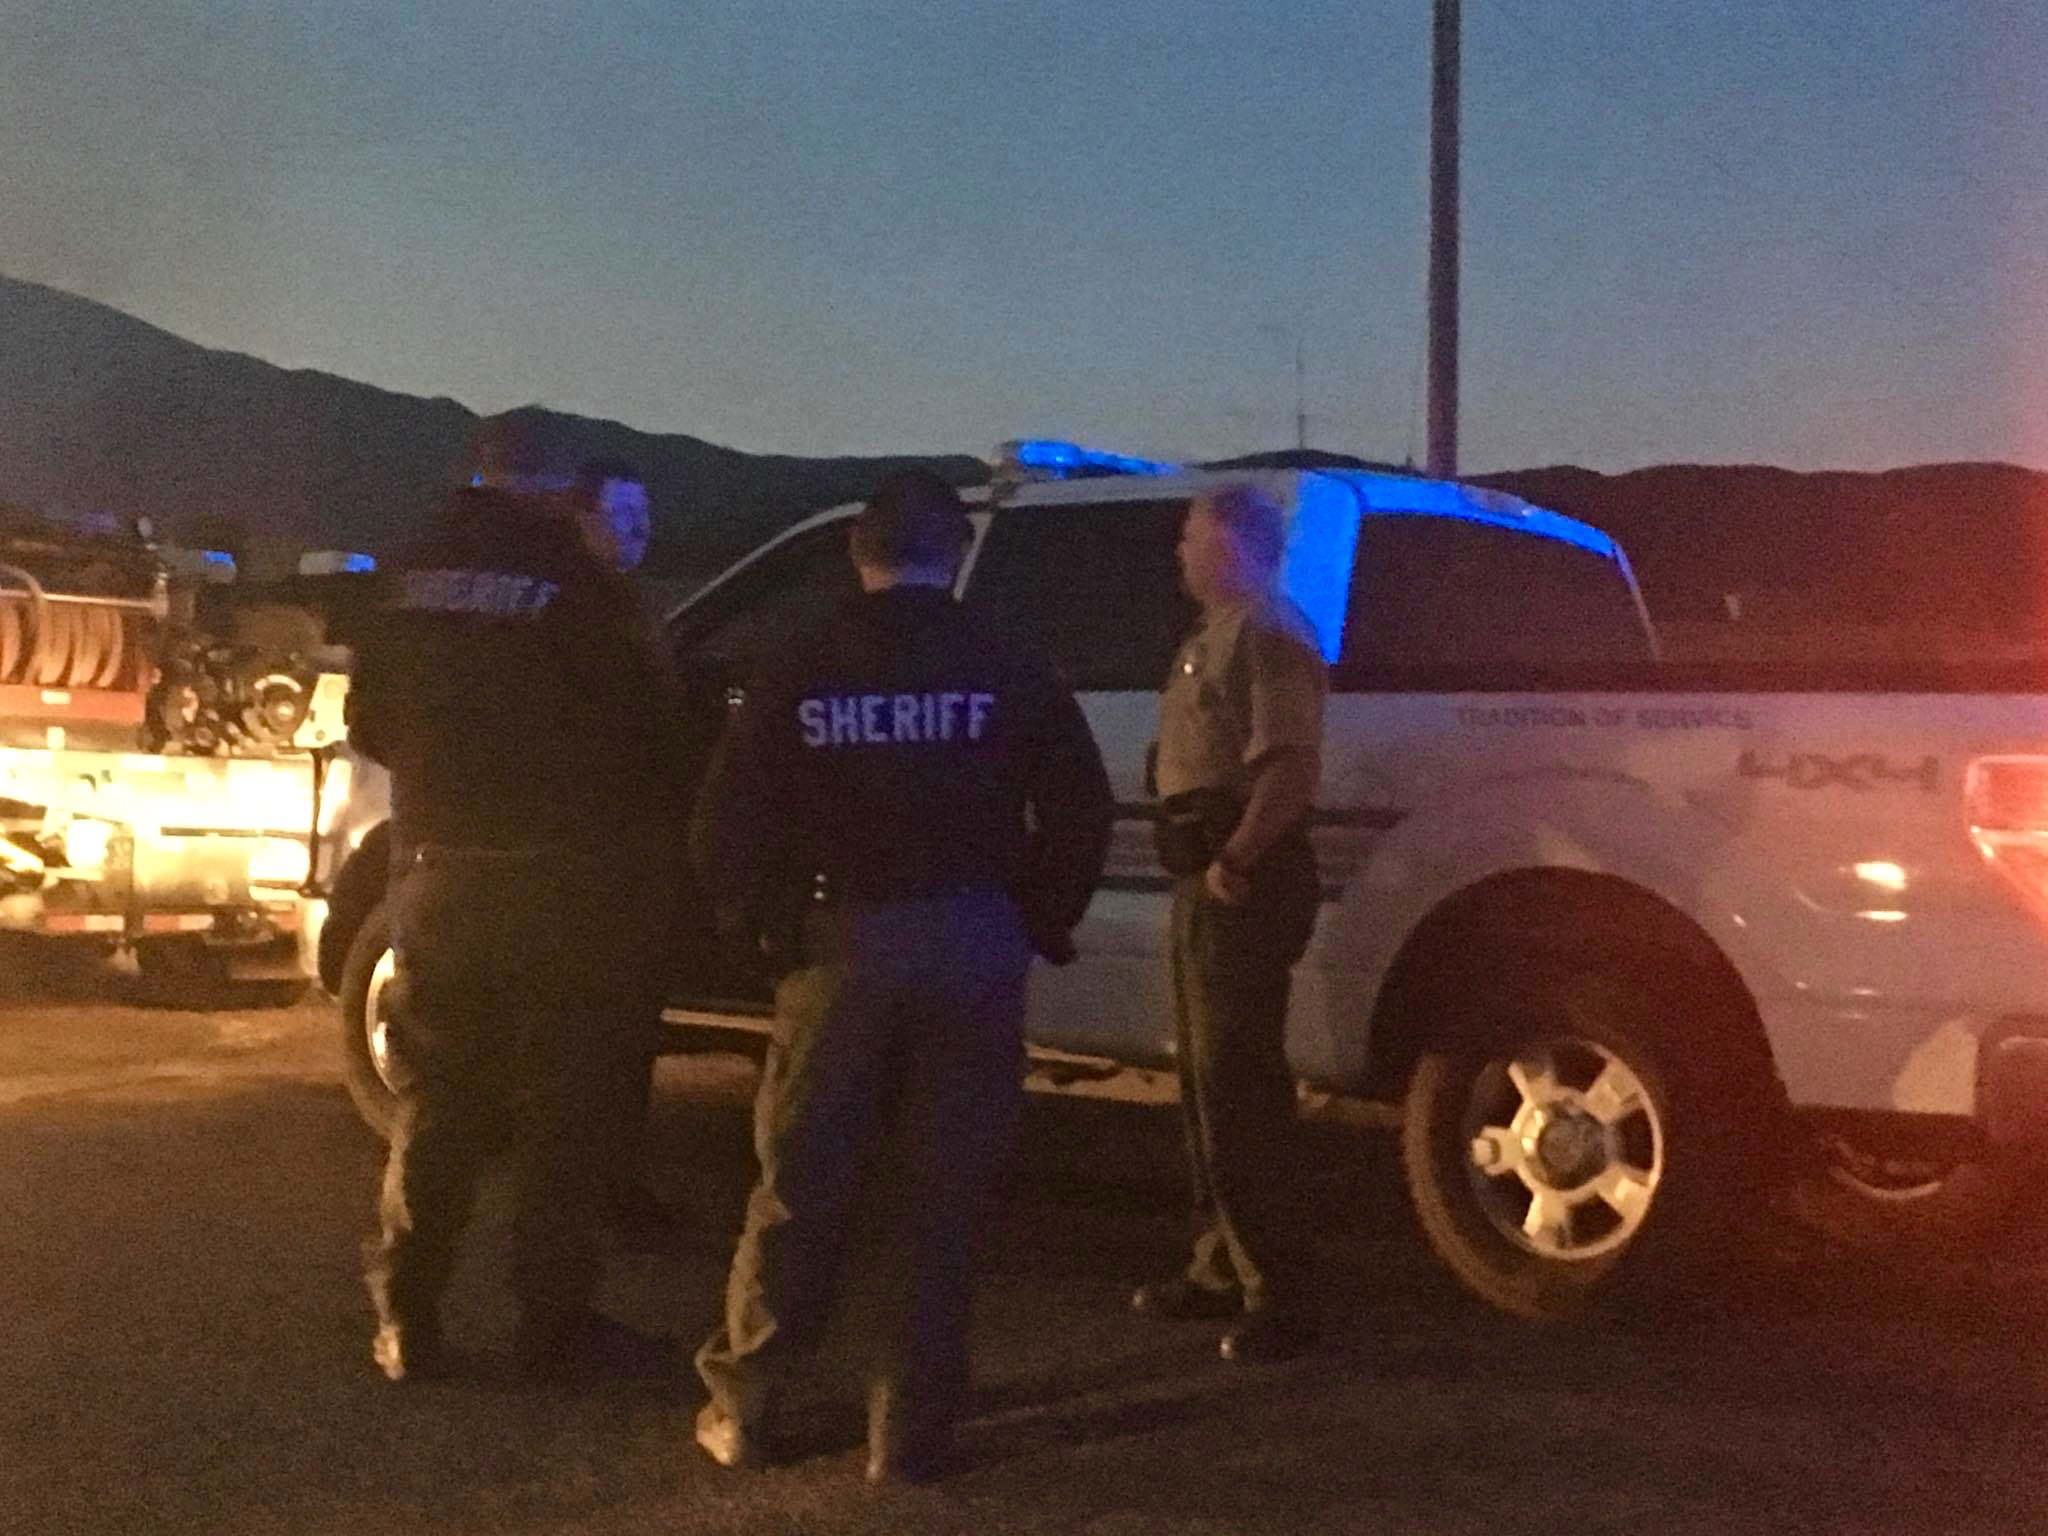 Members of the Iron County Sheriff's Office responding to the Hicks Fire in Iron County, Utah, Oct. 17, 2016 | Photo courtesy of the Iron County Sheriff's Office, Cedar City News / St. George News